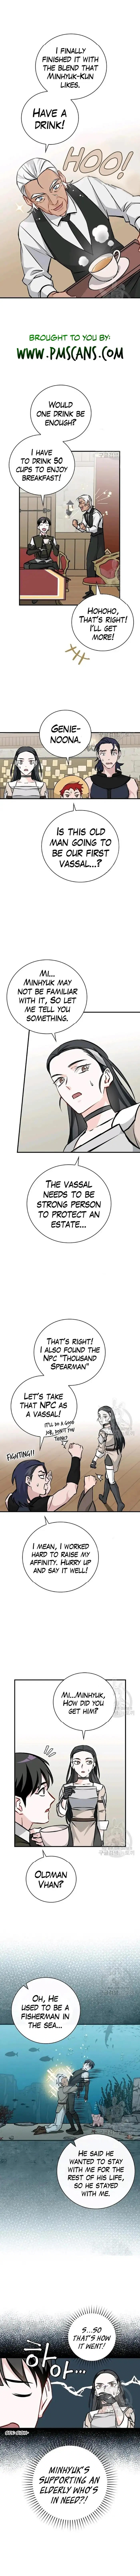 Leveling Up, By Only Eating! Chapter 75 page 9 - Mangakakalots.com